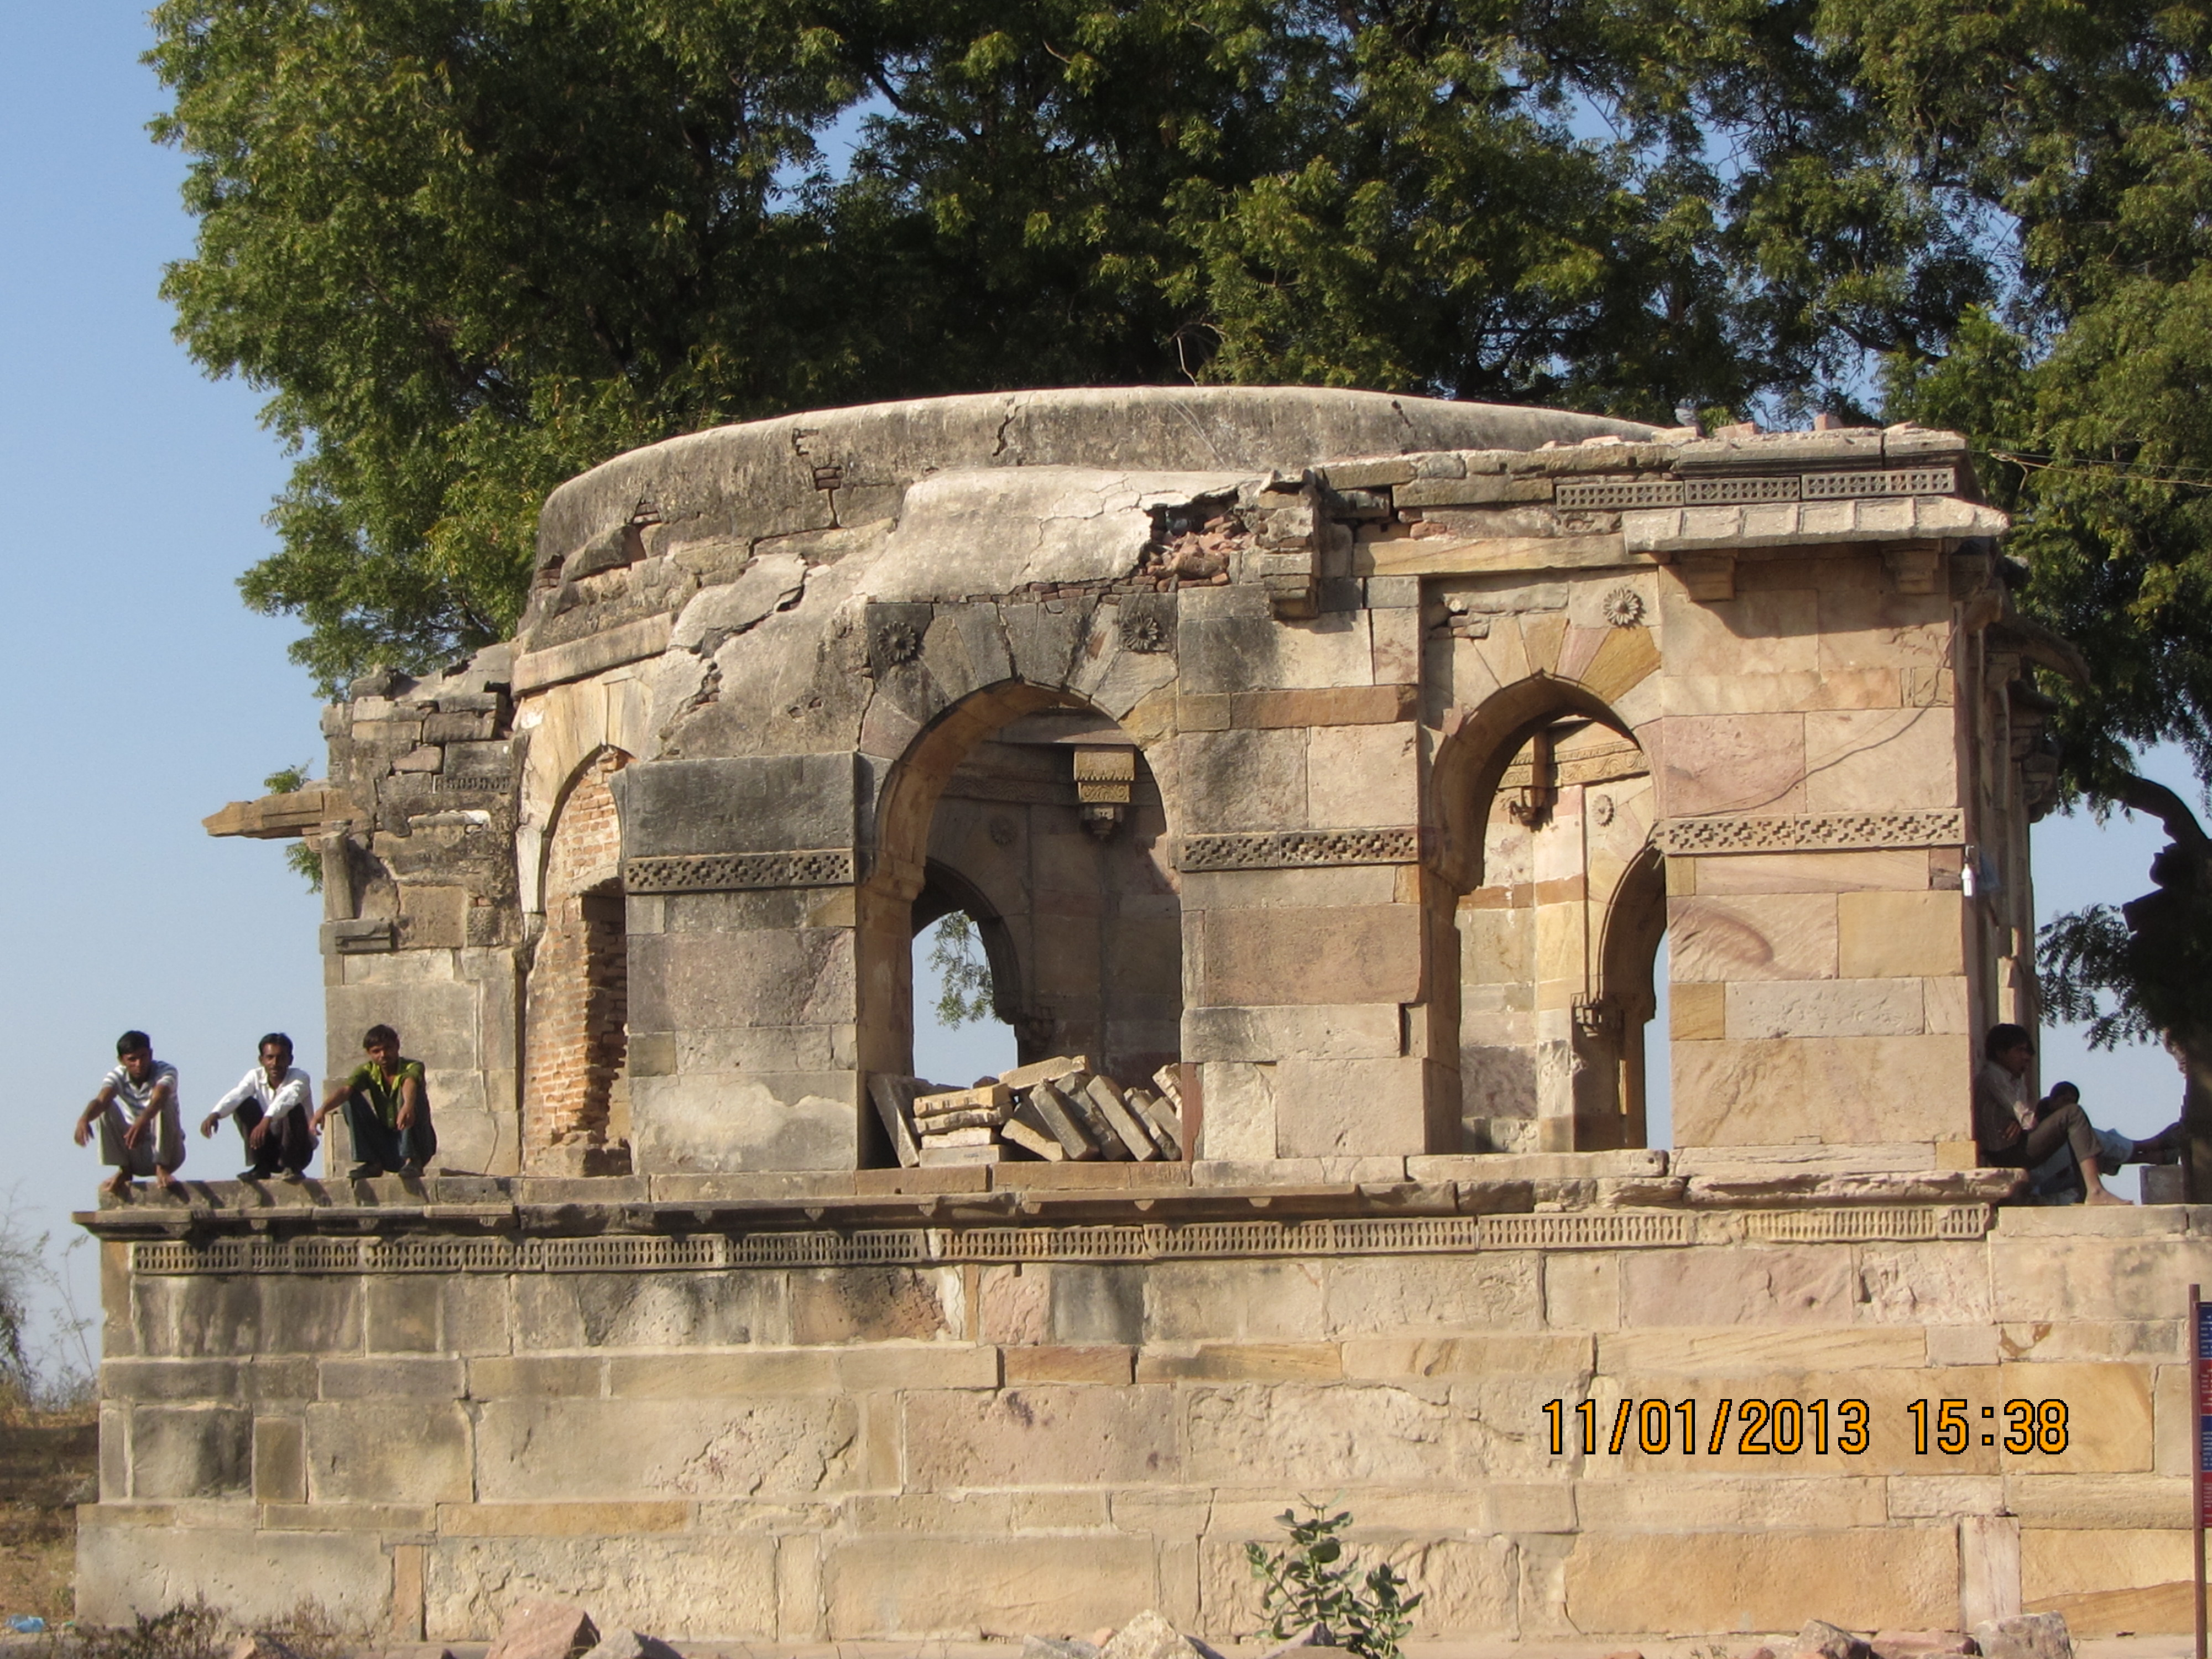 THIS ANCIENT STRUCTURE MATCHES GATE WAY OF INDIA ....CONNECTS  VALLABHI AND WALES